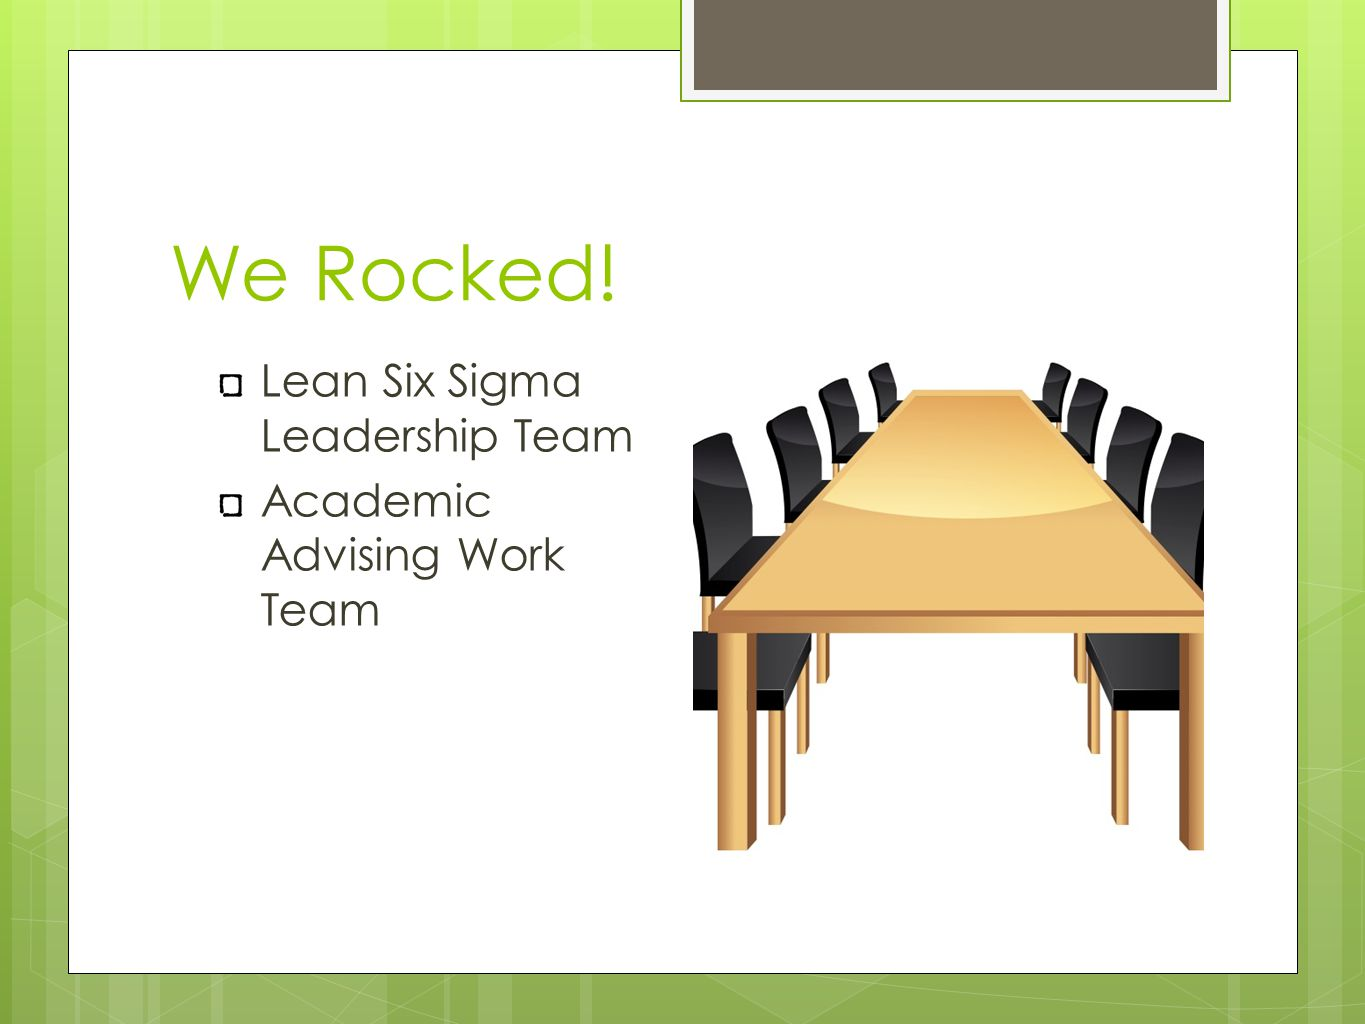 We Rocked! Lean Six Sigma Leadership Team Academic Advising Work Team